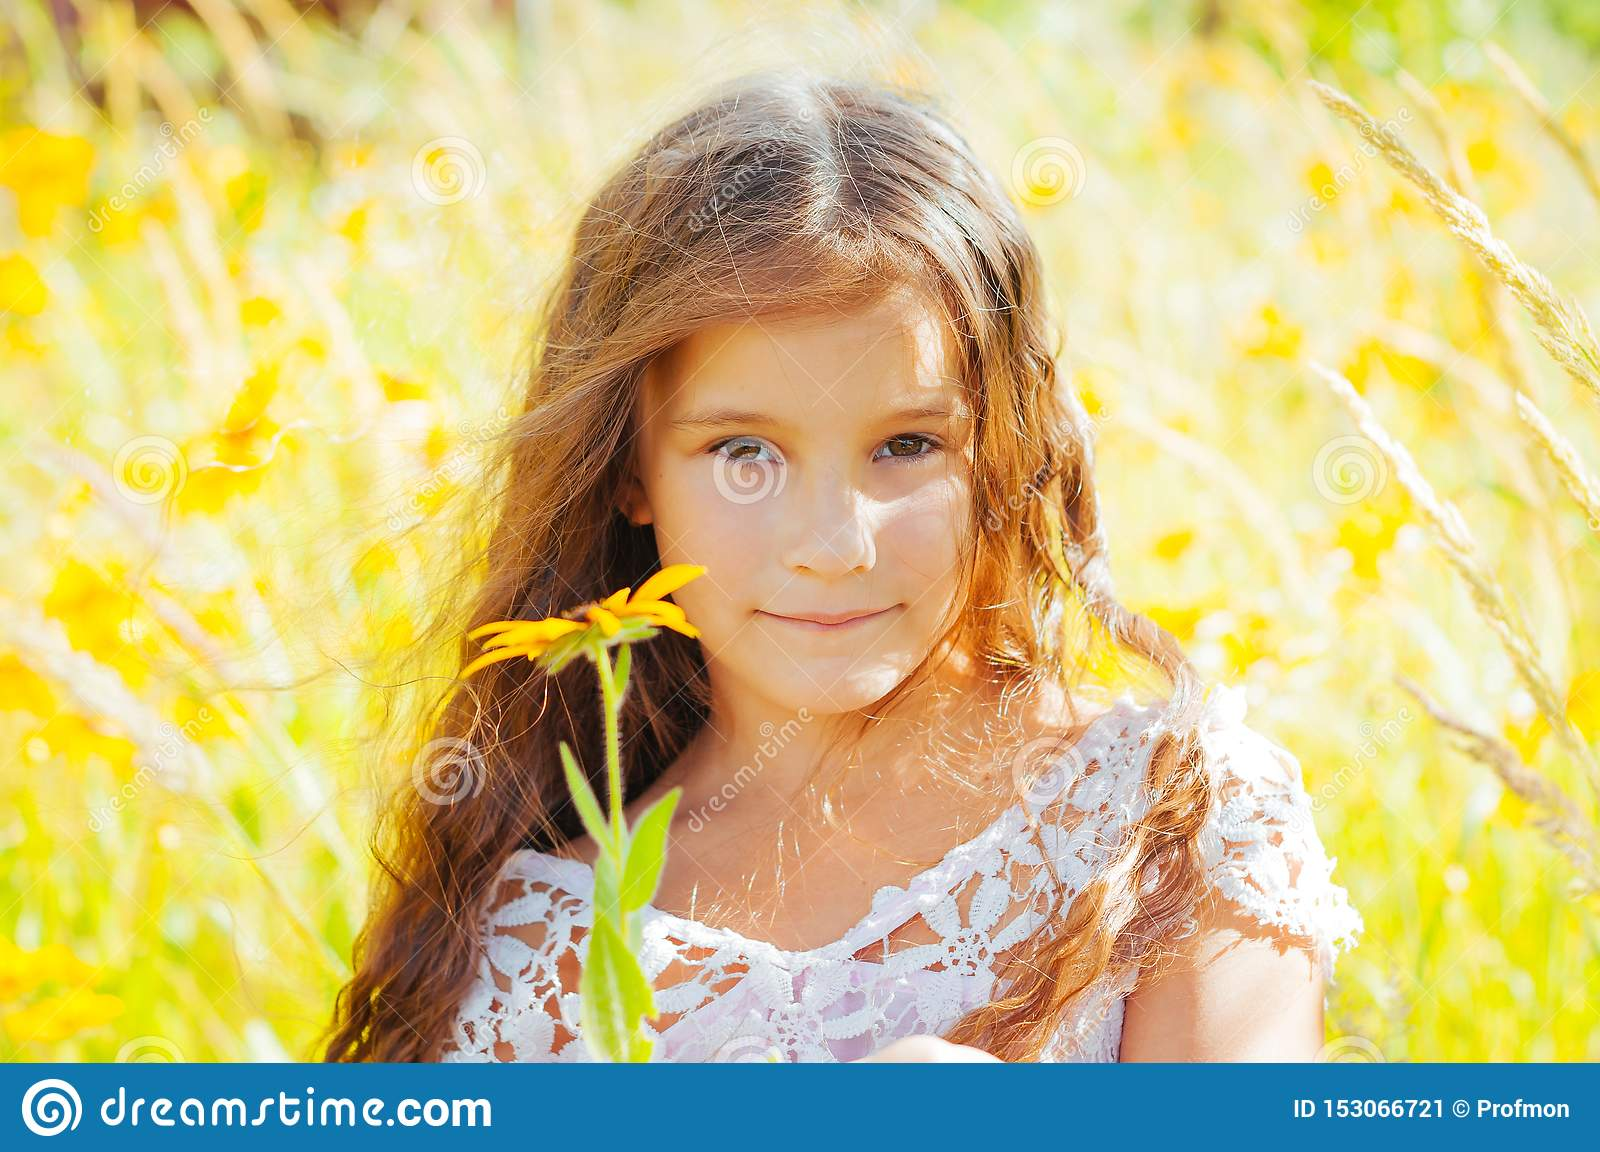 Little girl with long hair in a white dress rejoices in a field with flowers